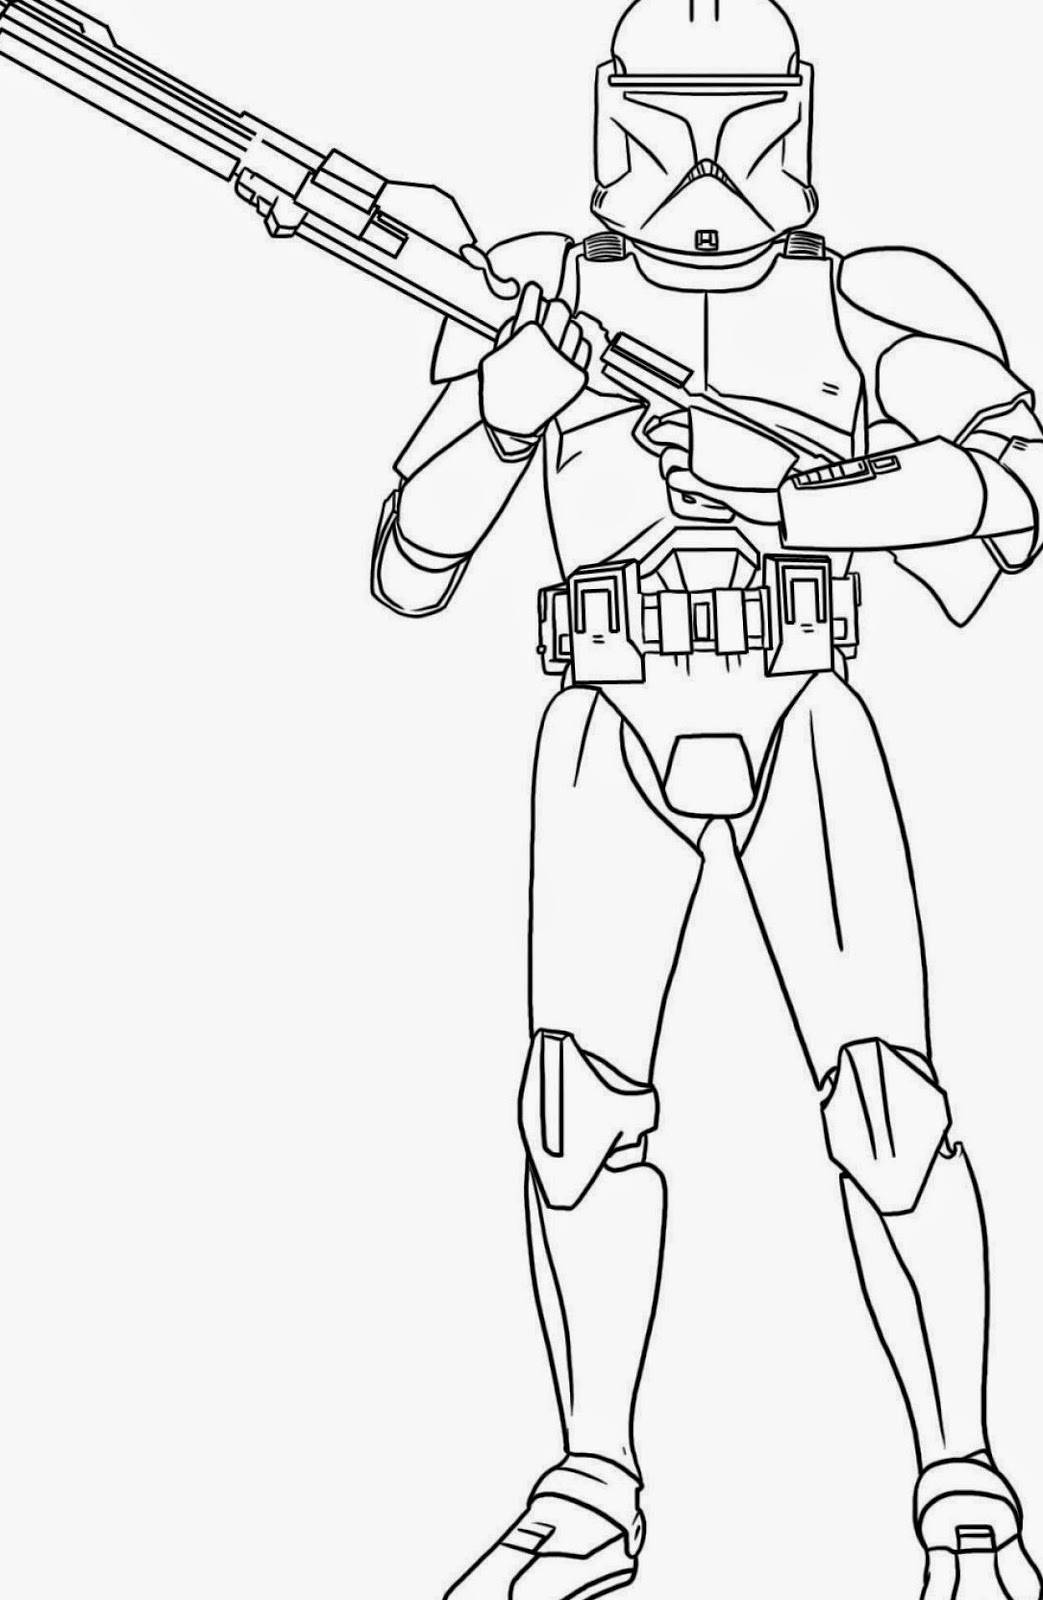 star wars coloring pages to print coloring pages star wars free printable coloring pages pages print star coloring to wars